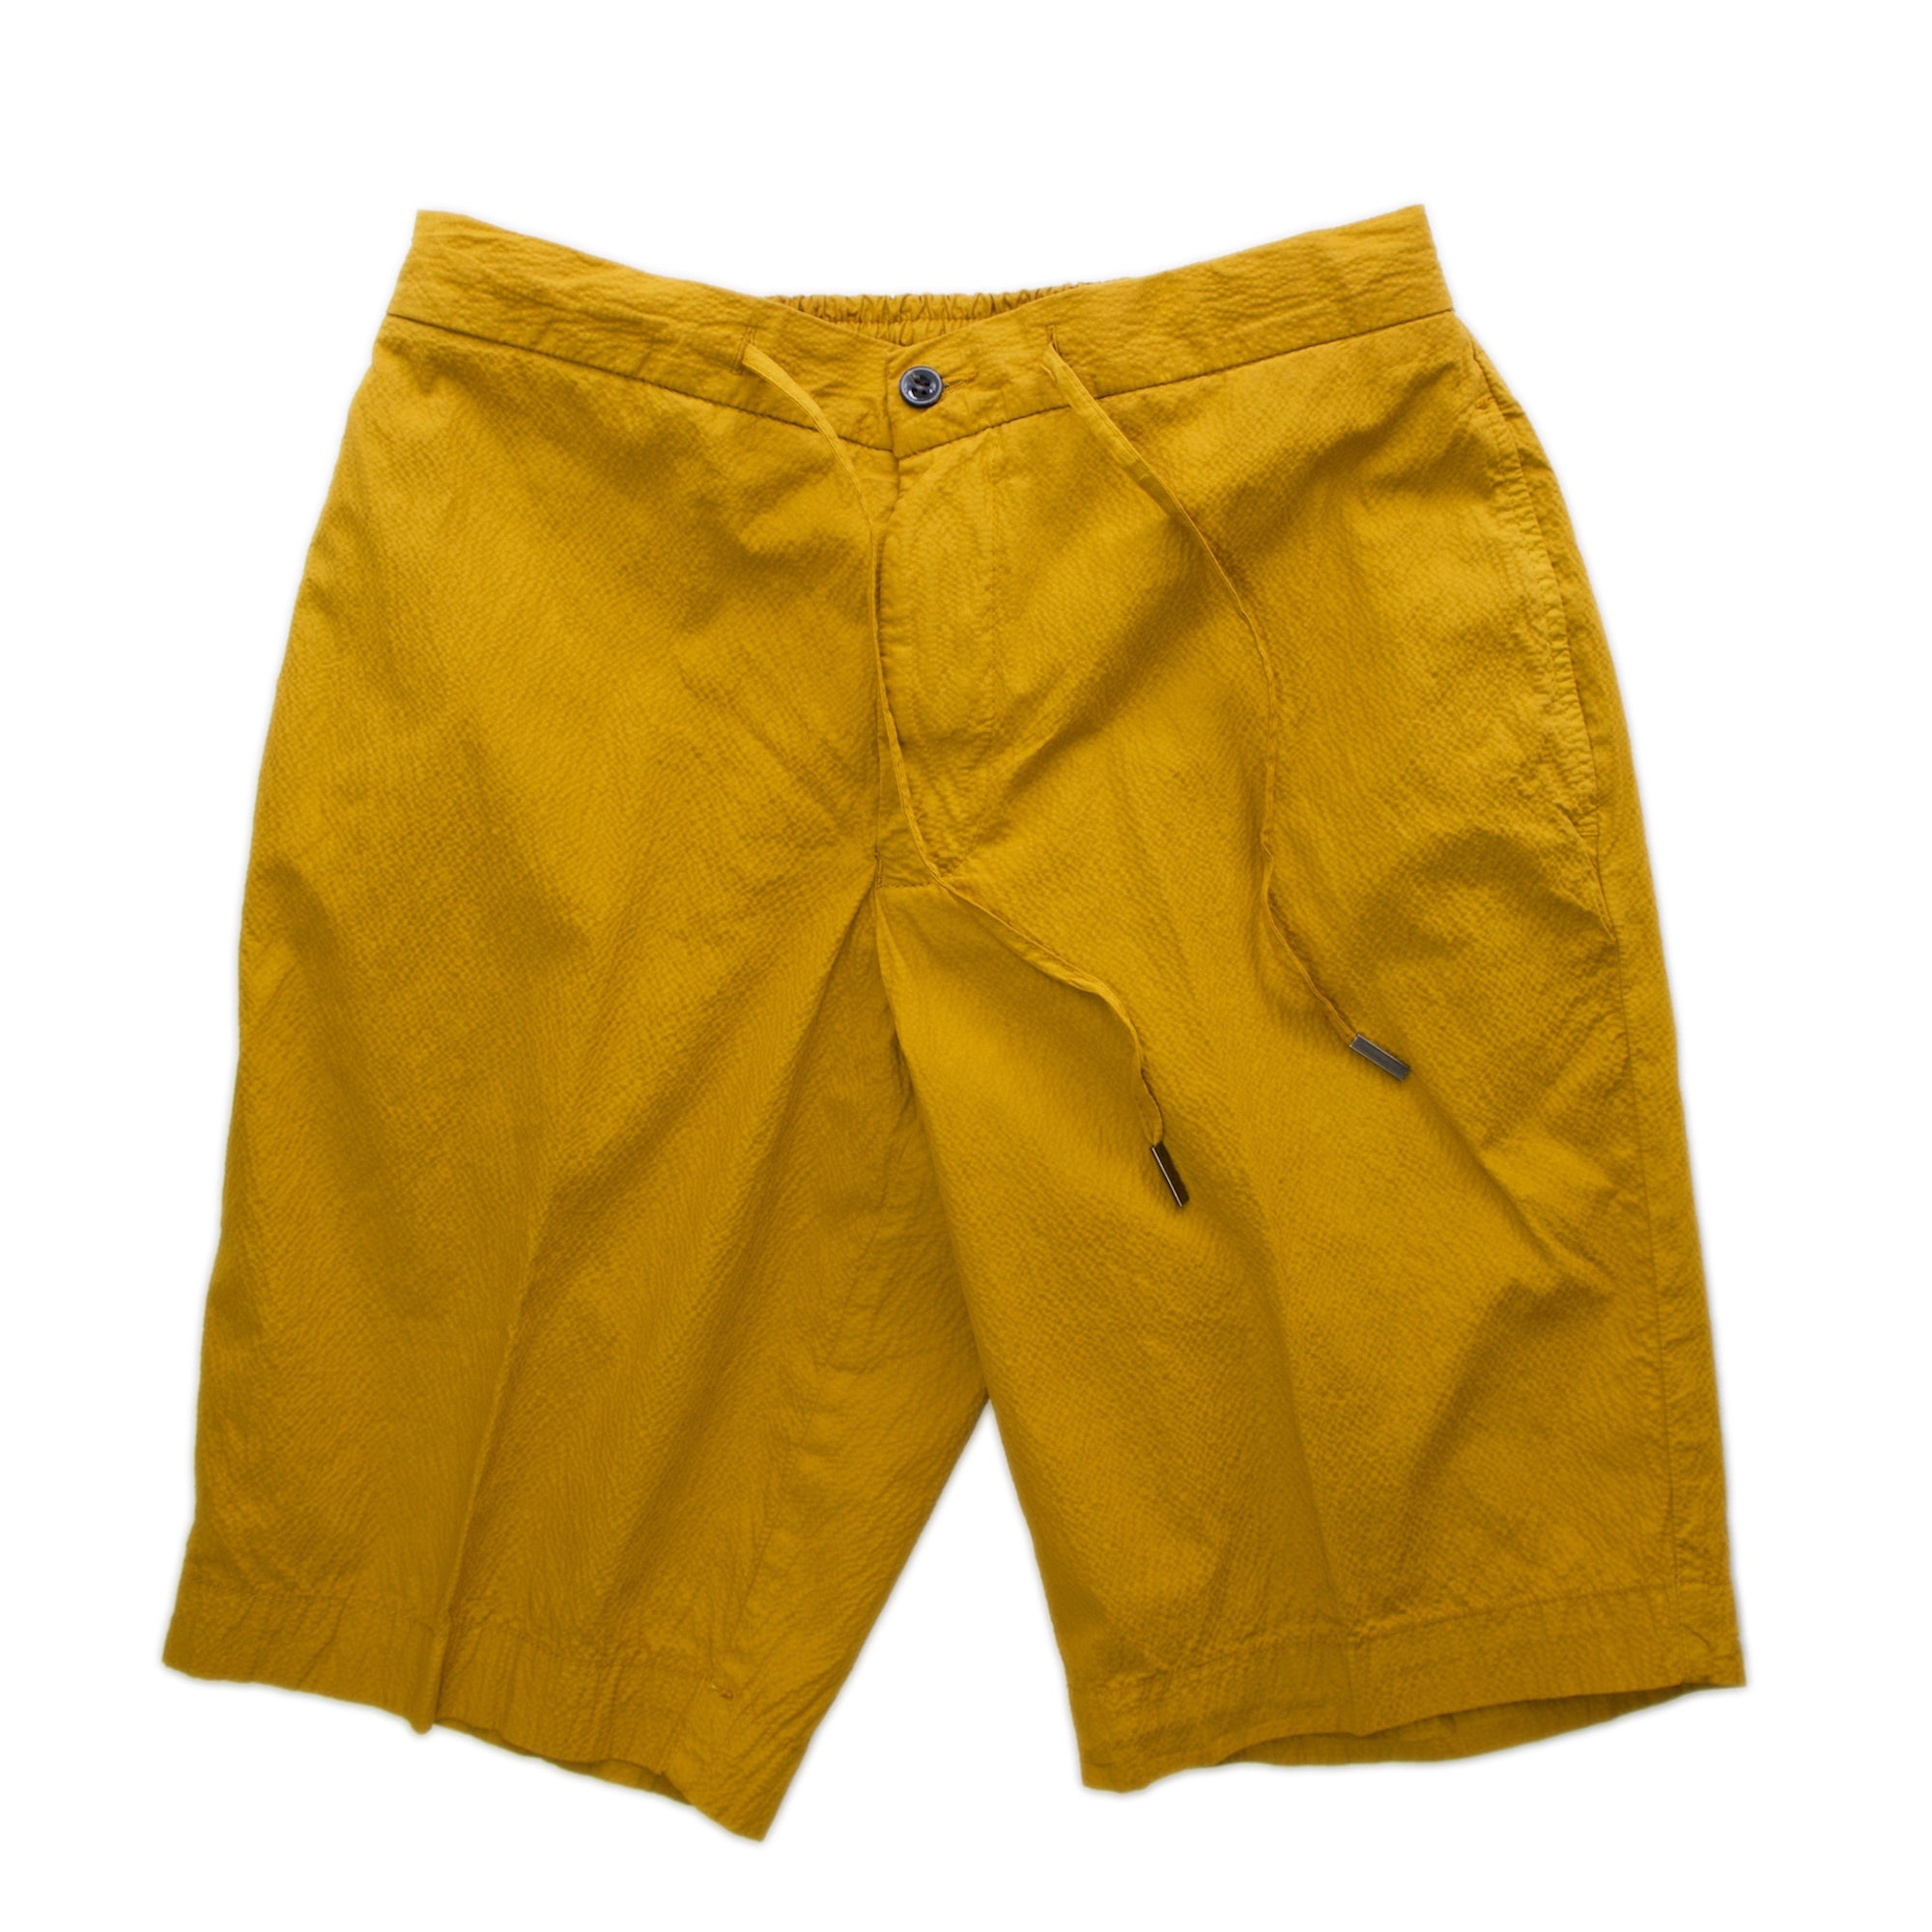 GERMANO / SEERSUCKER SHORTS / 259CG29080